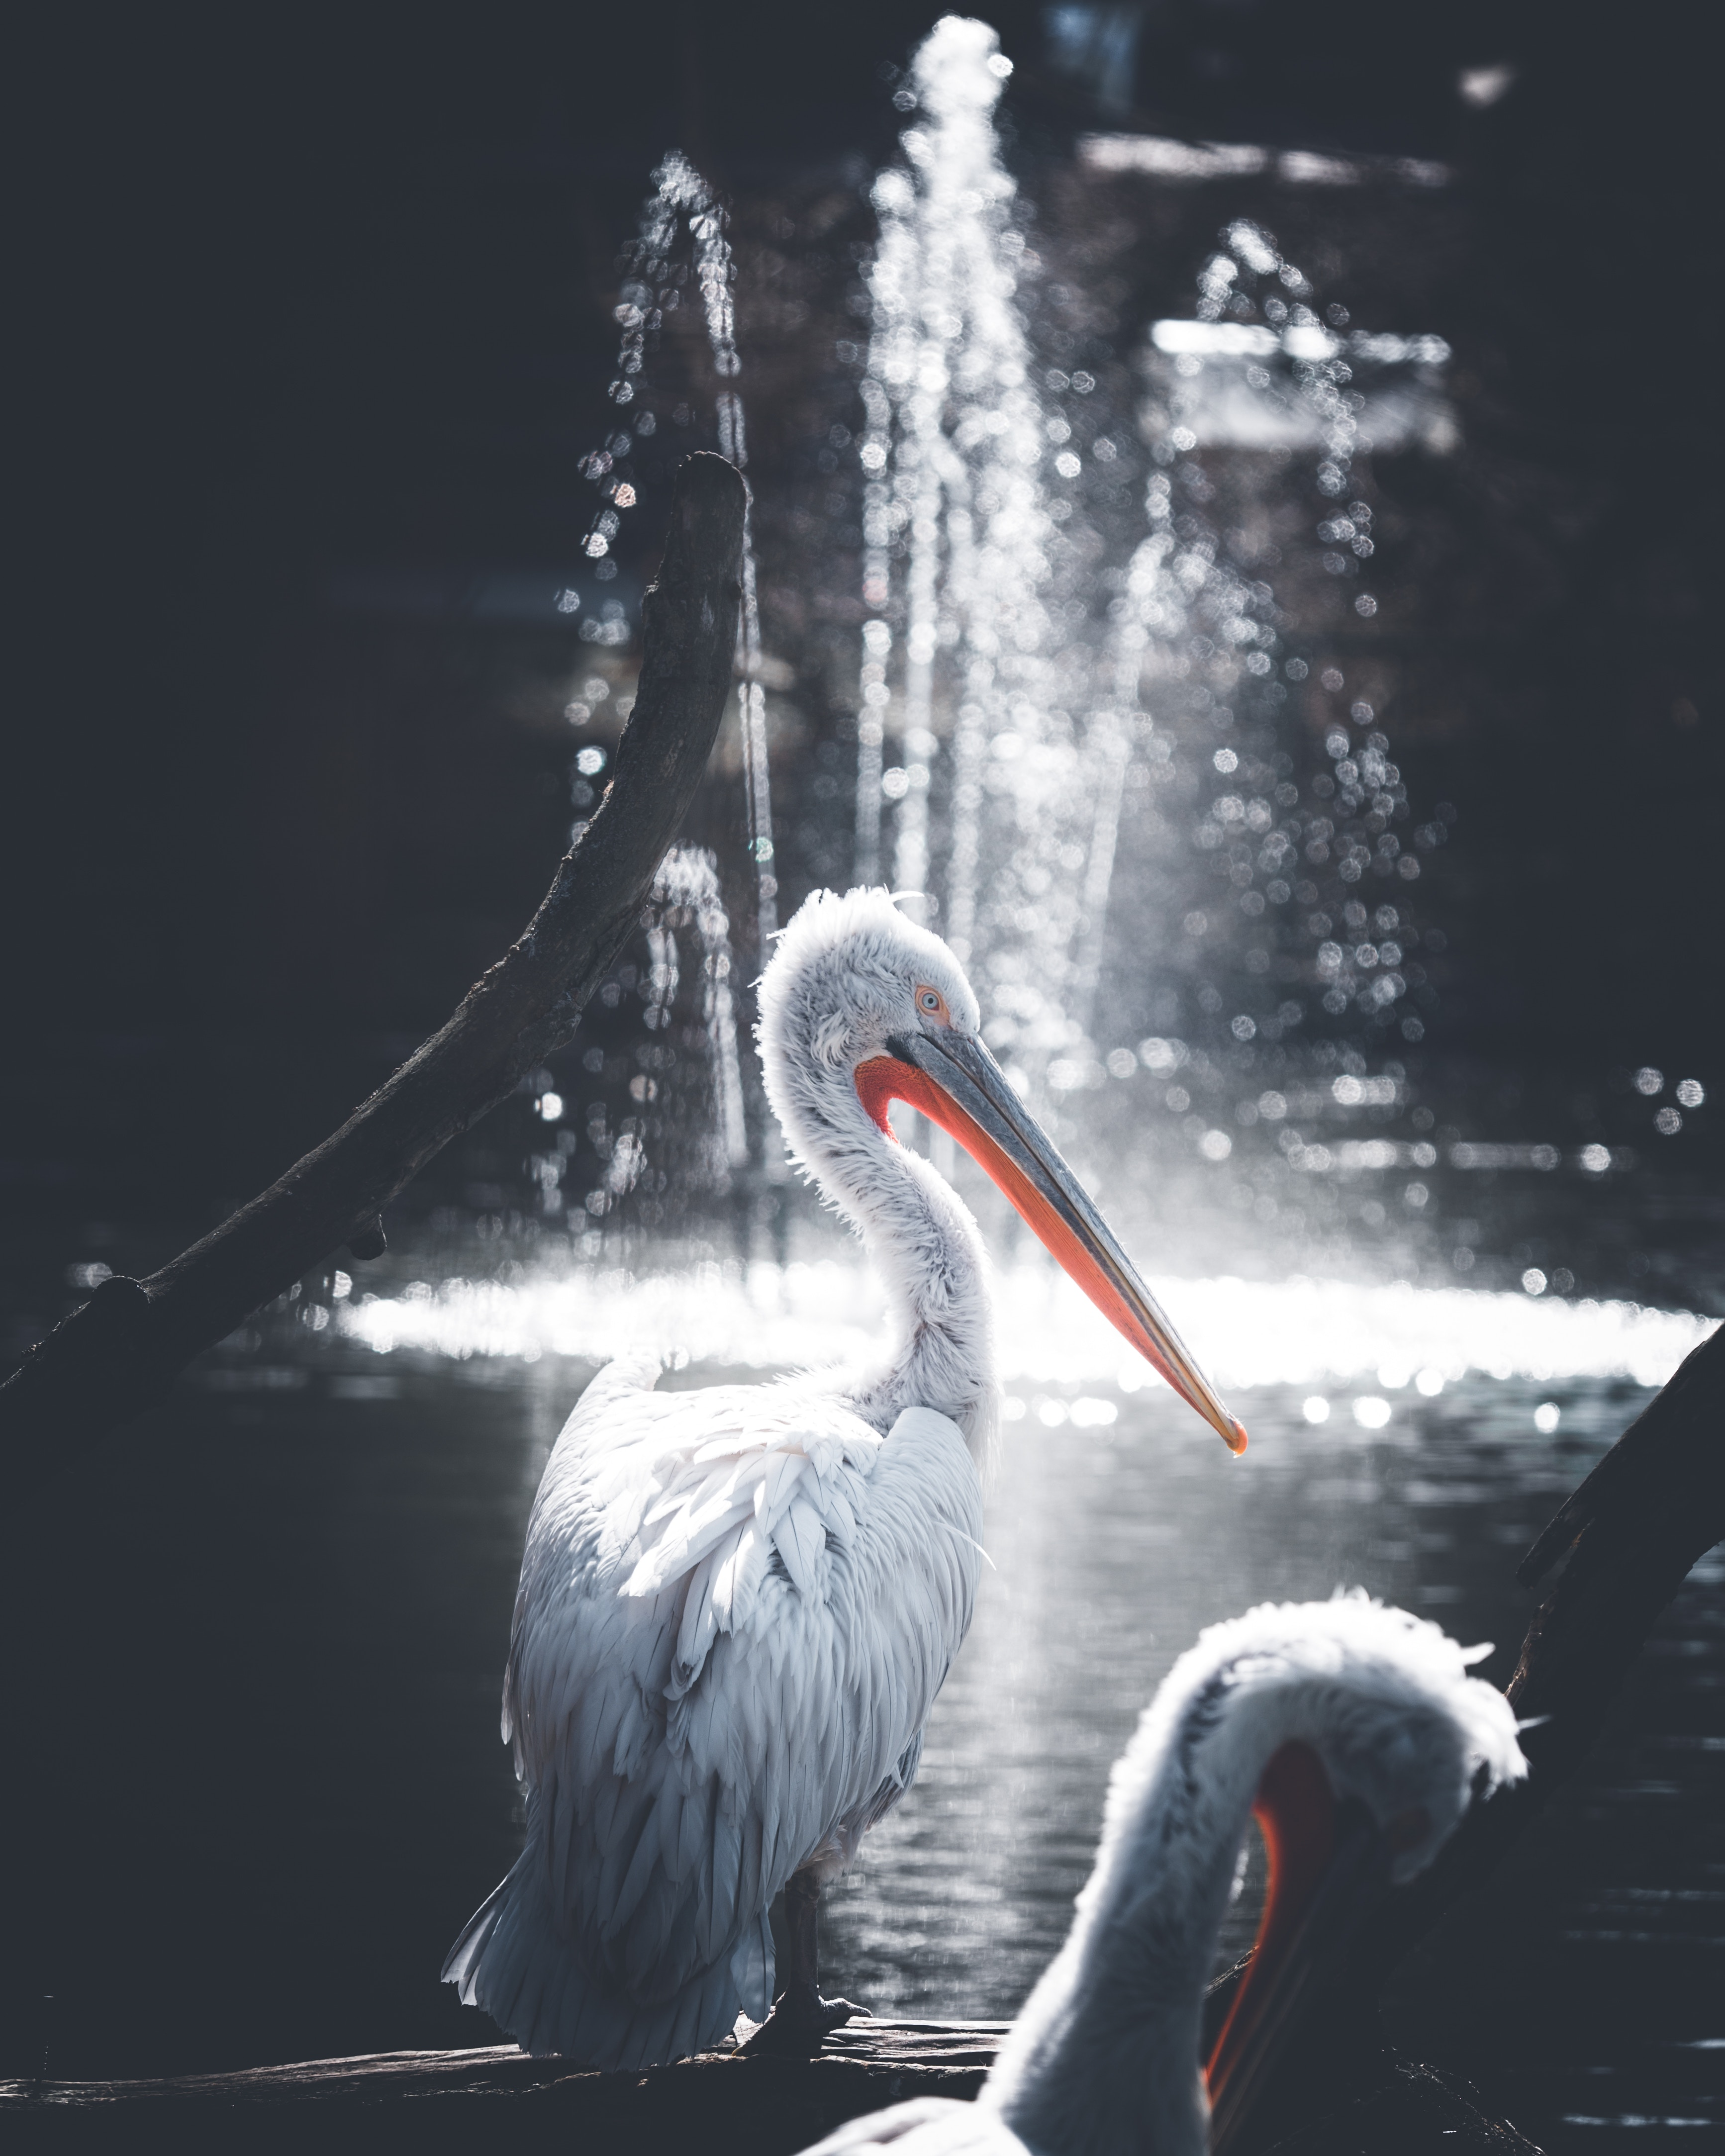 52130 download wallpaper Animals, Pelican, Bird, Water, Glare screensavers and pictures for free